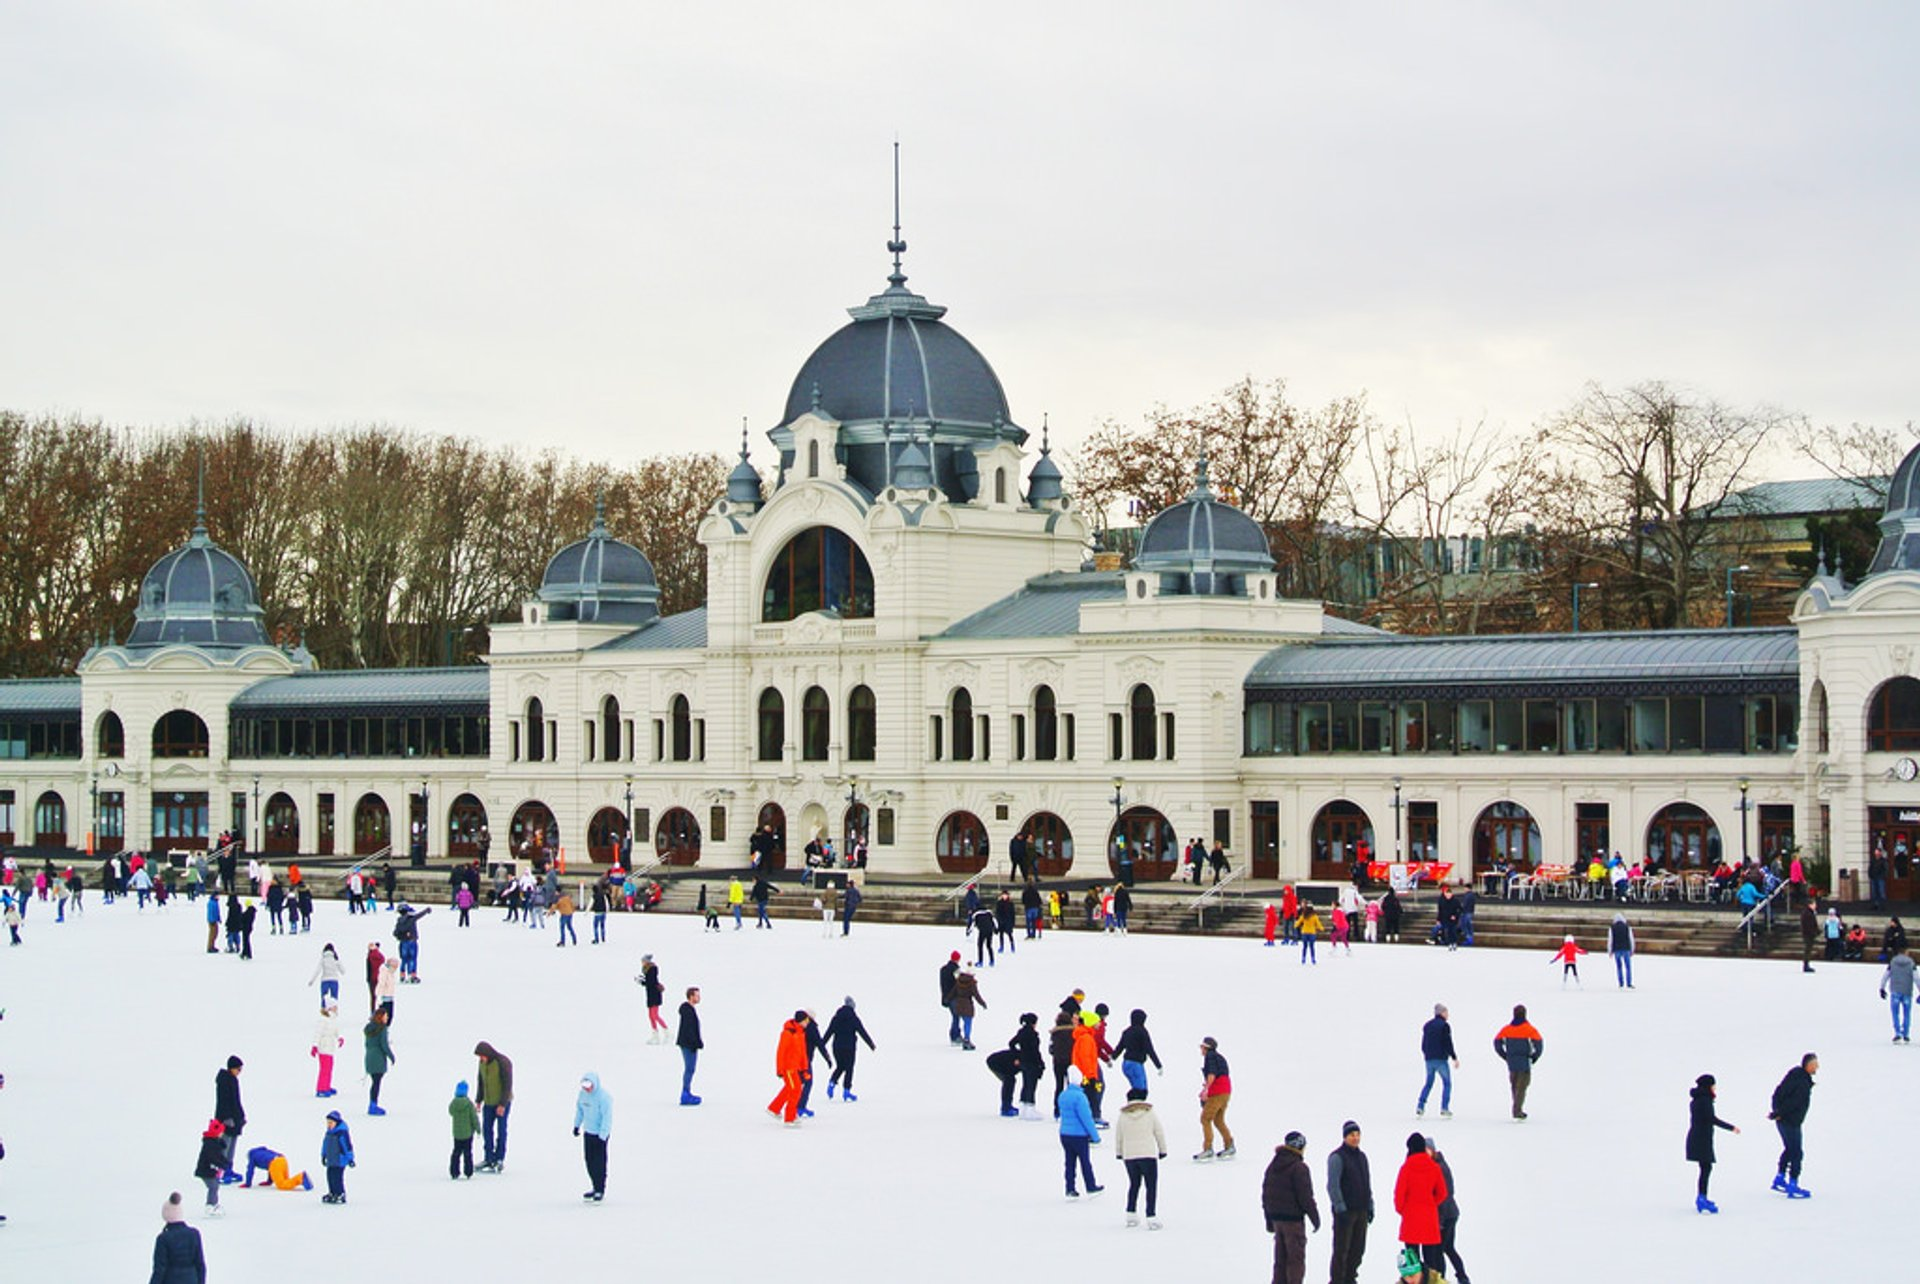 City Park Ice Rink in Hungary 2019 - Best Time